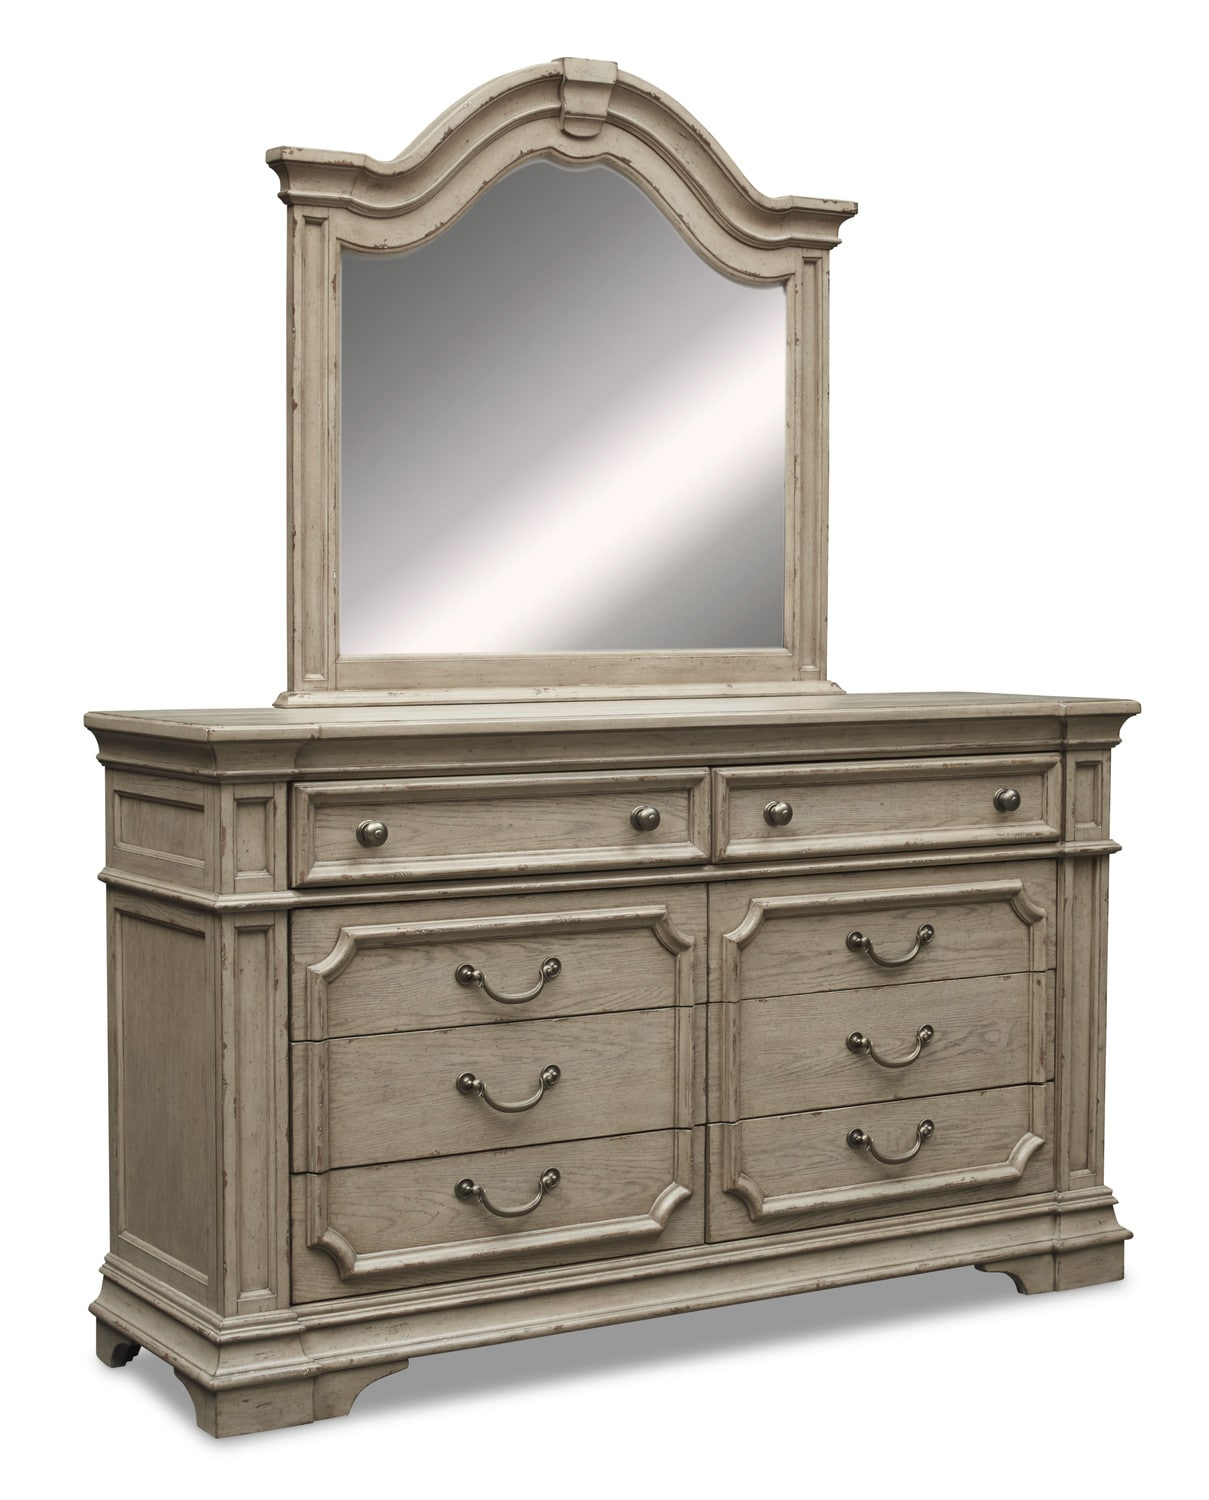 Bedroom Furniture - Chatelet Dresser and Mirror